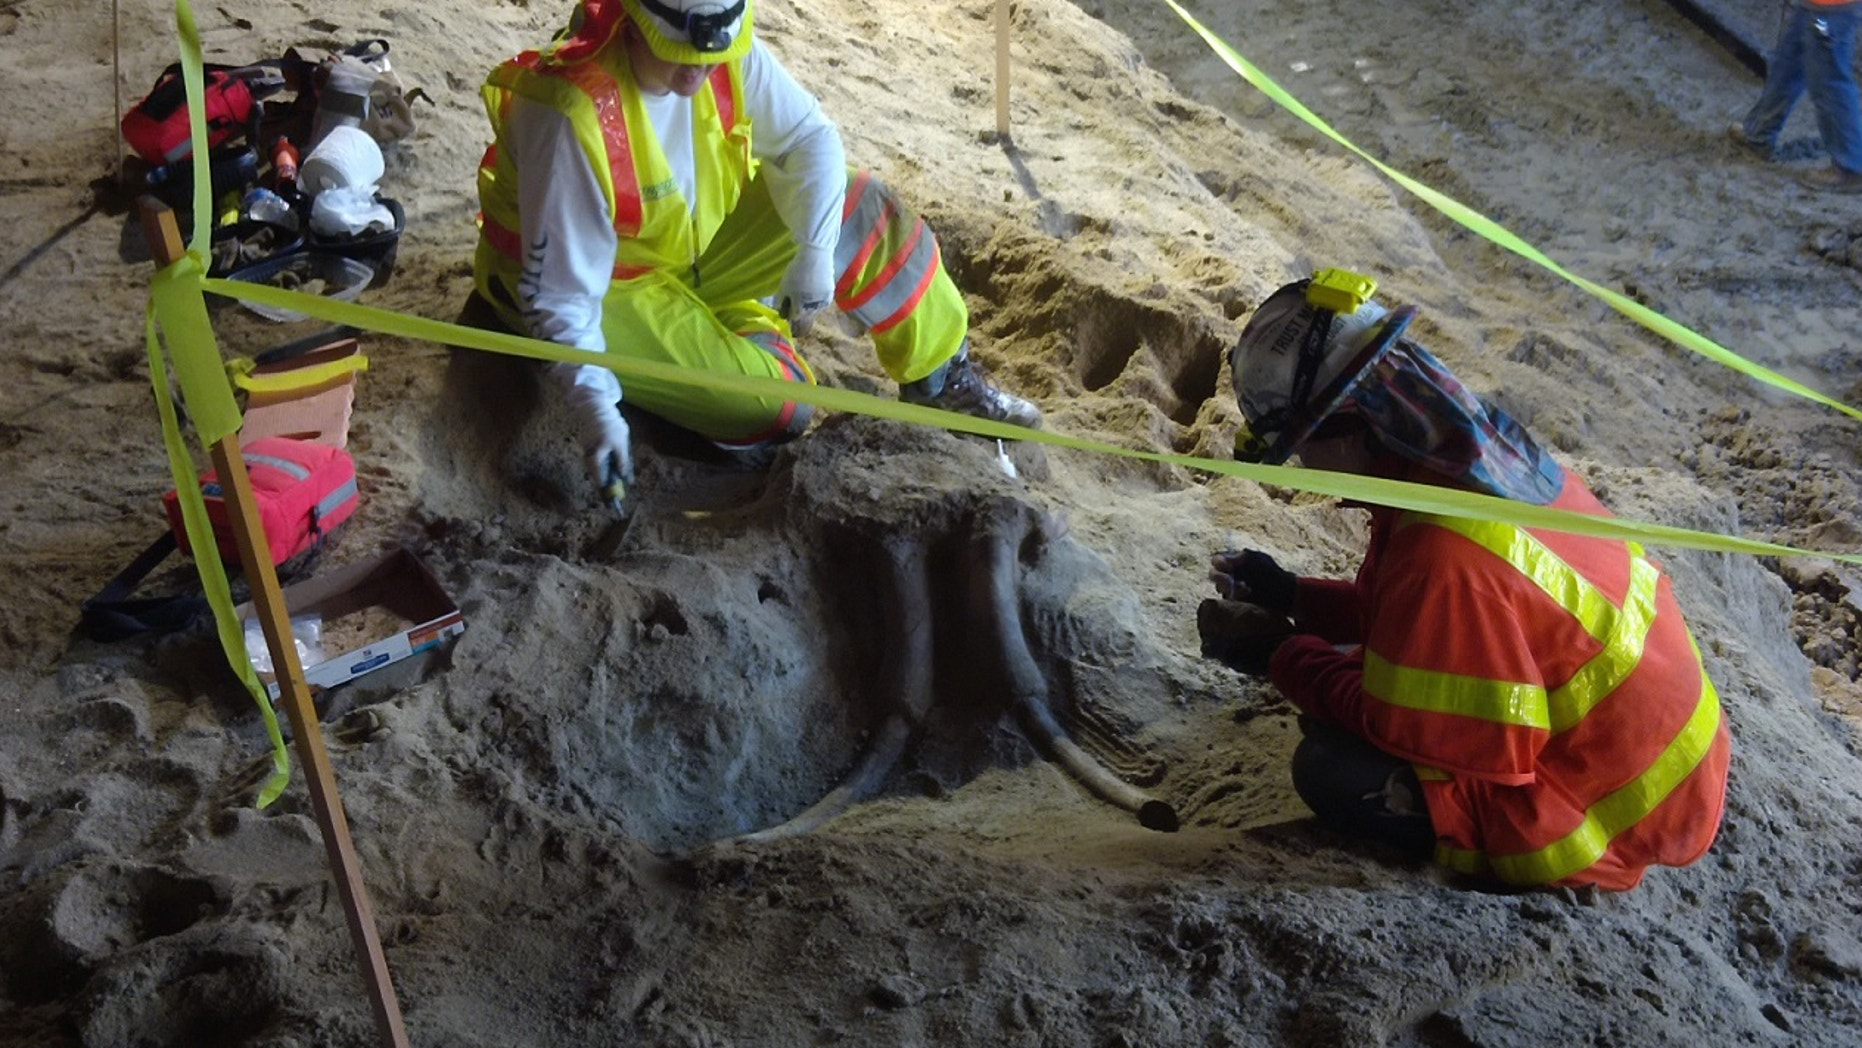 The skull of a large Probiscidean, such as a mammoth or a mastodon, was recently unearthed while construction workers were digging a new line to the Los Angeles Metro (Metro).